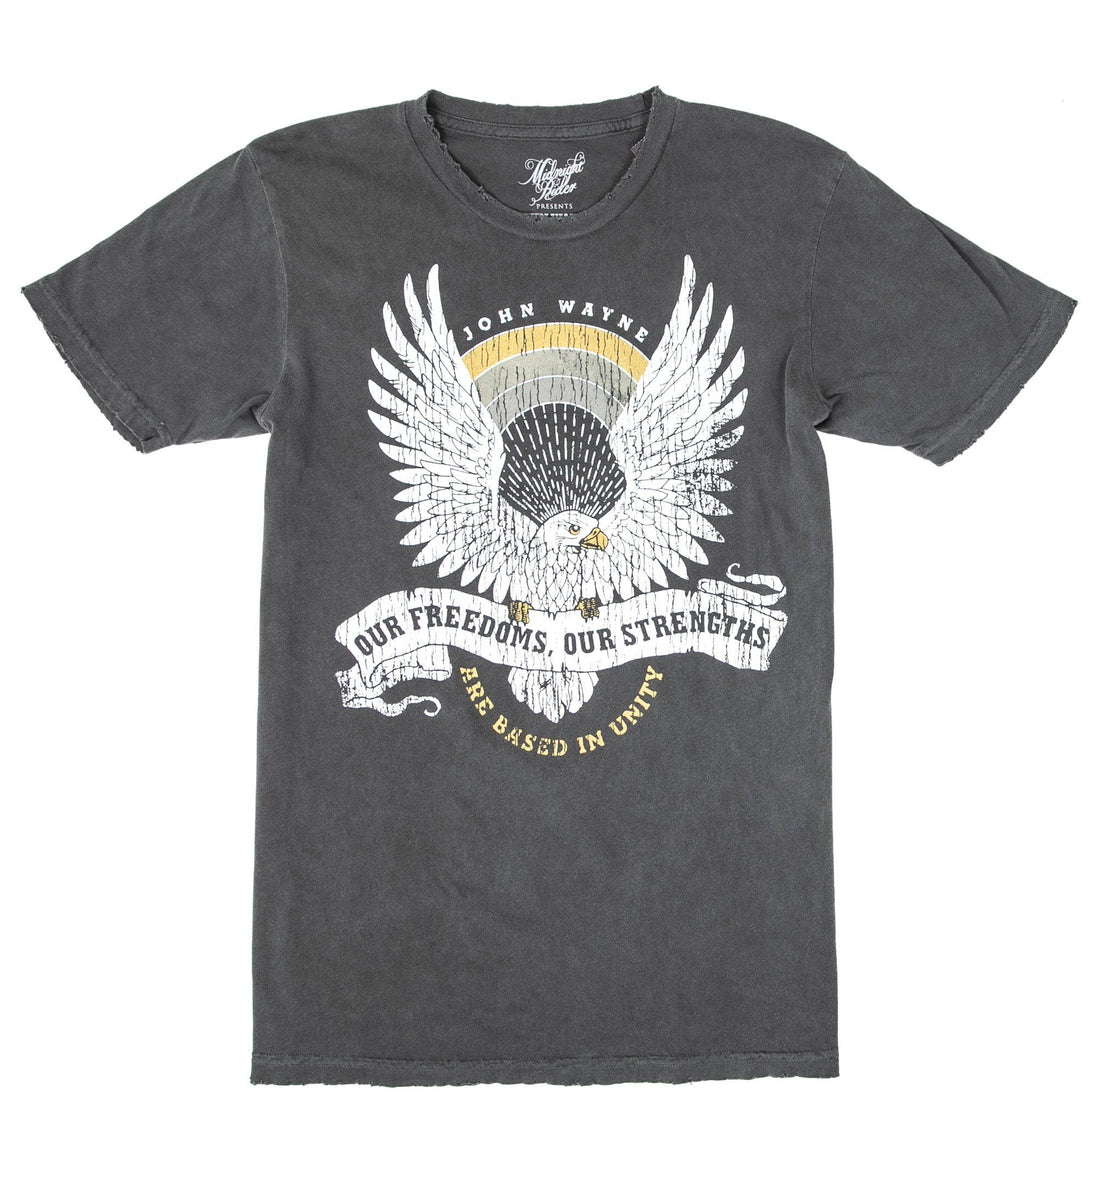 Midnight Rider - Our Freedoms Our Strengths Tee - Tops - Iron and Resin